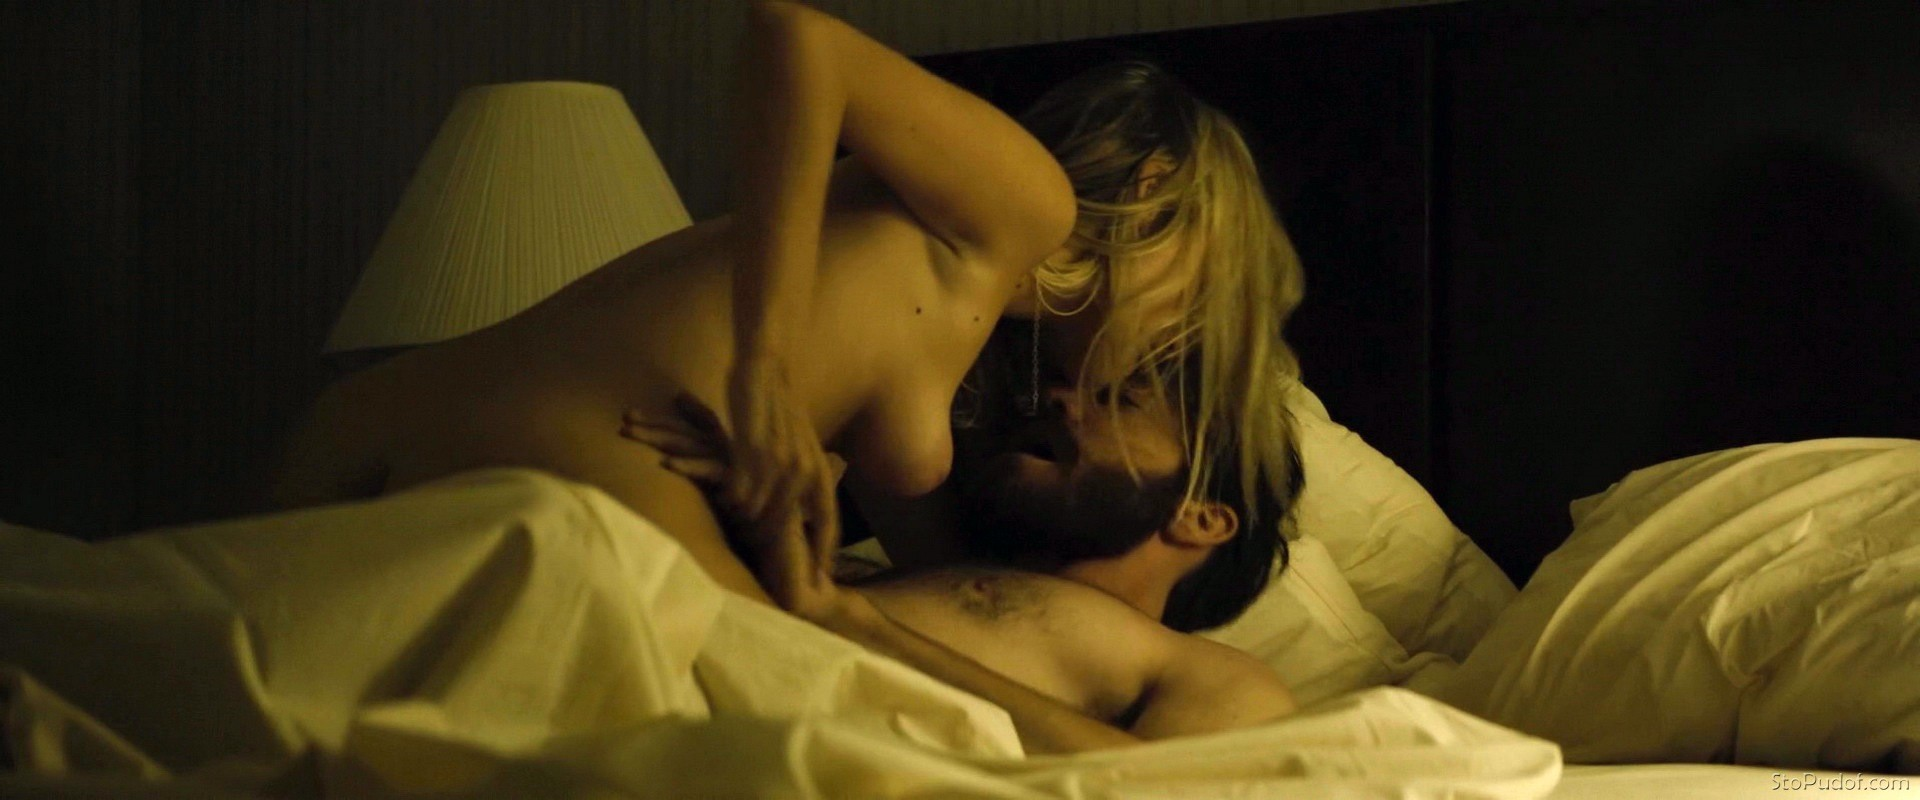 Melanie Laurent leaked naked photos uncensored - UkPhotoSafari